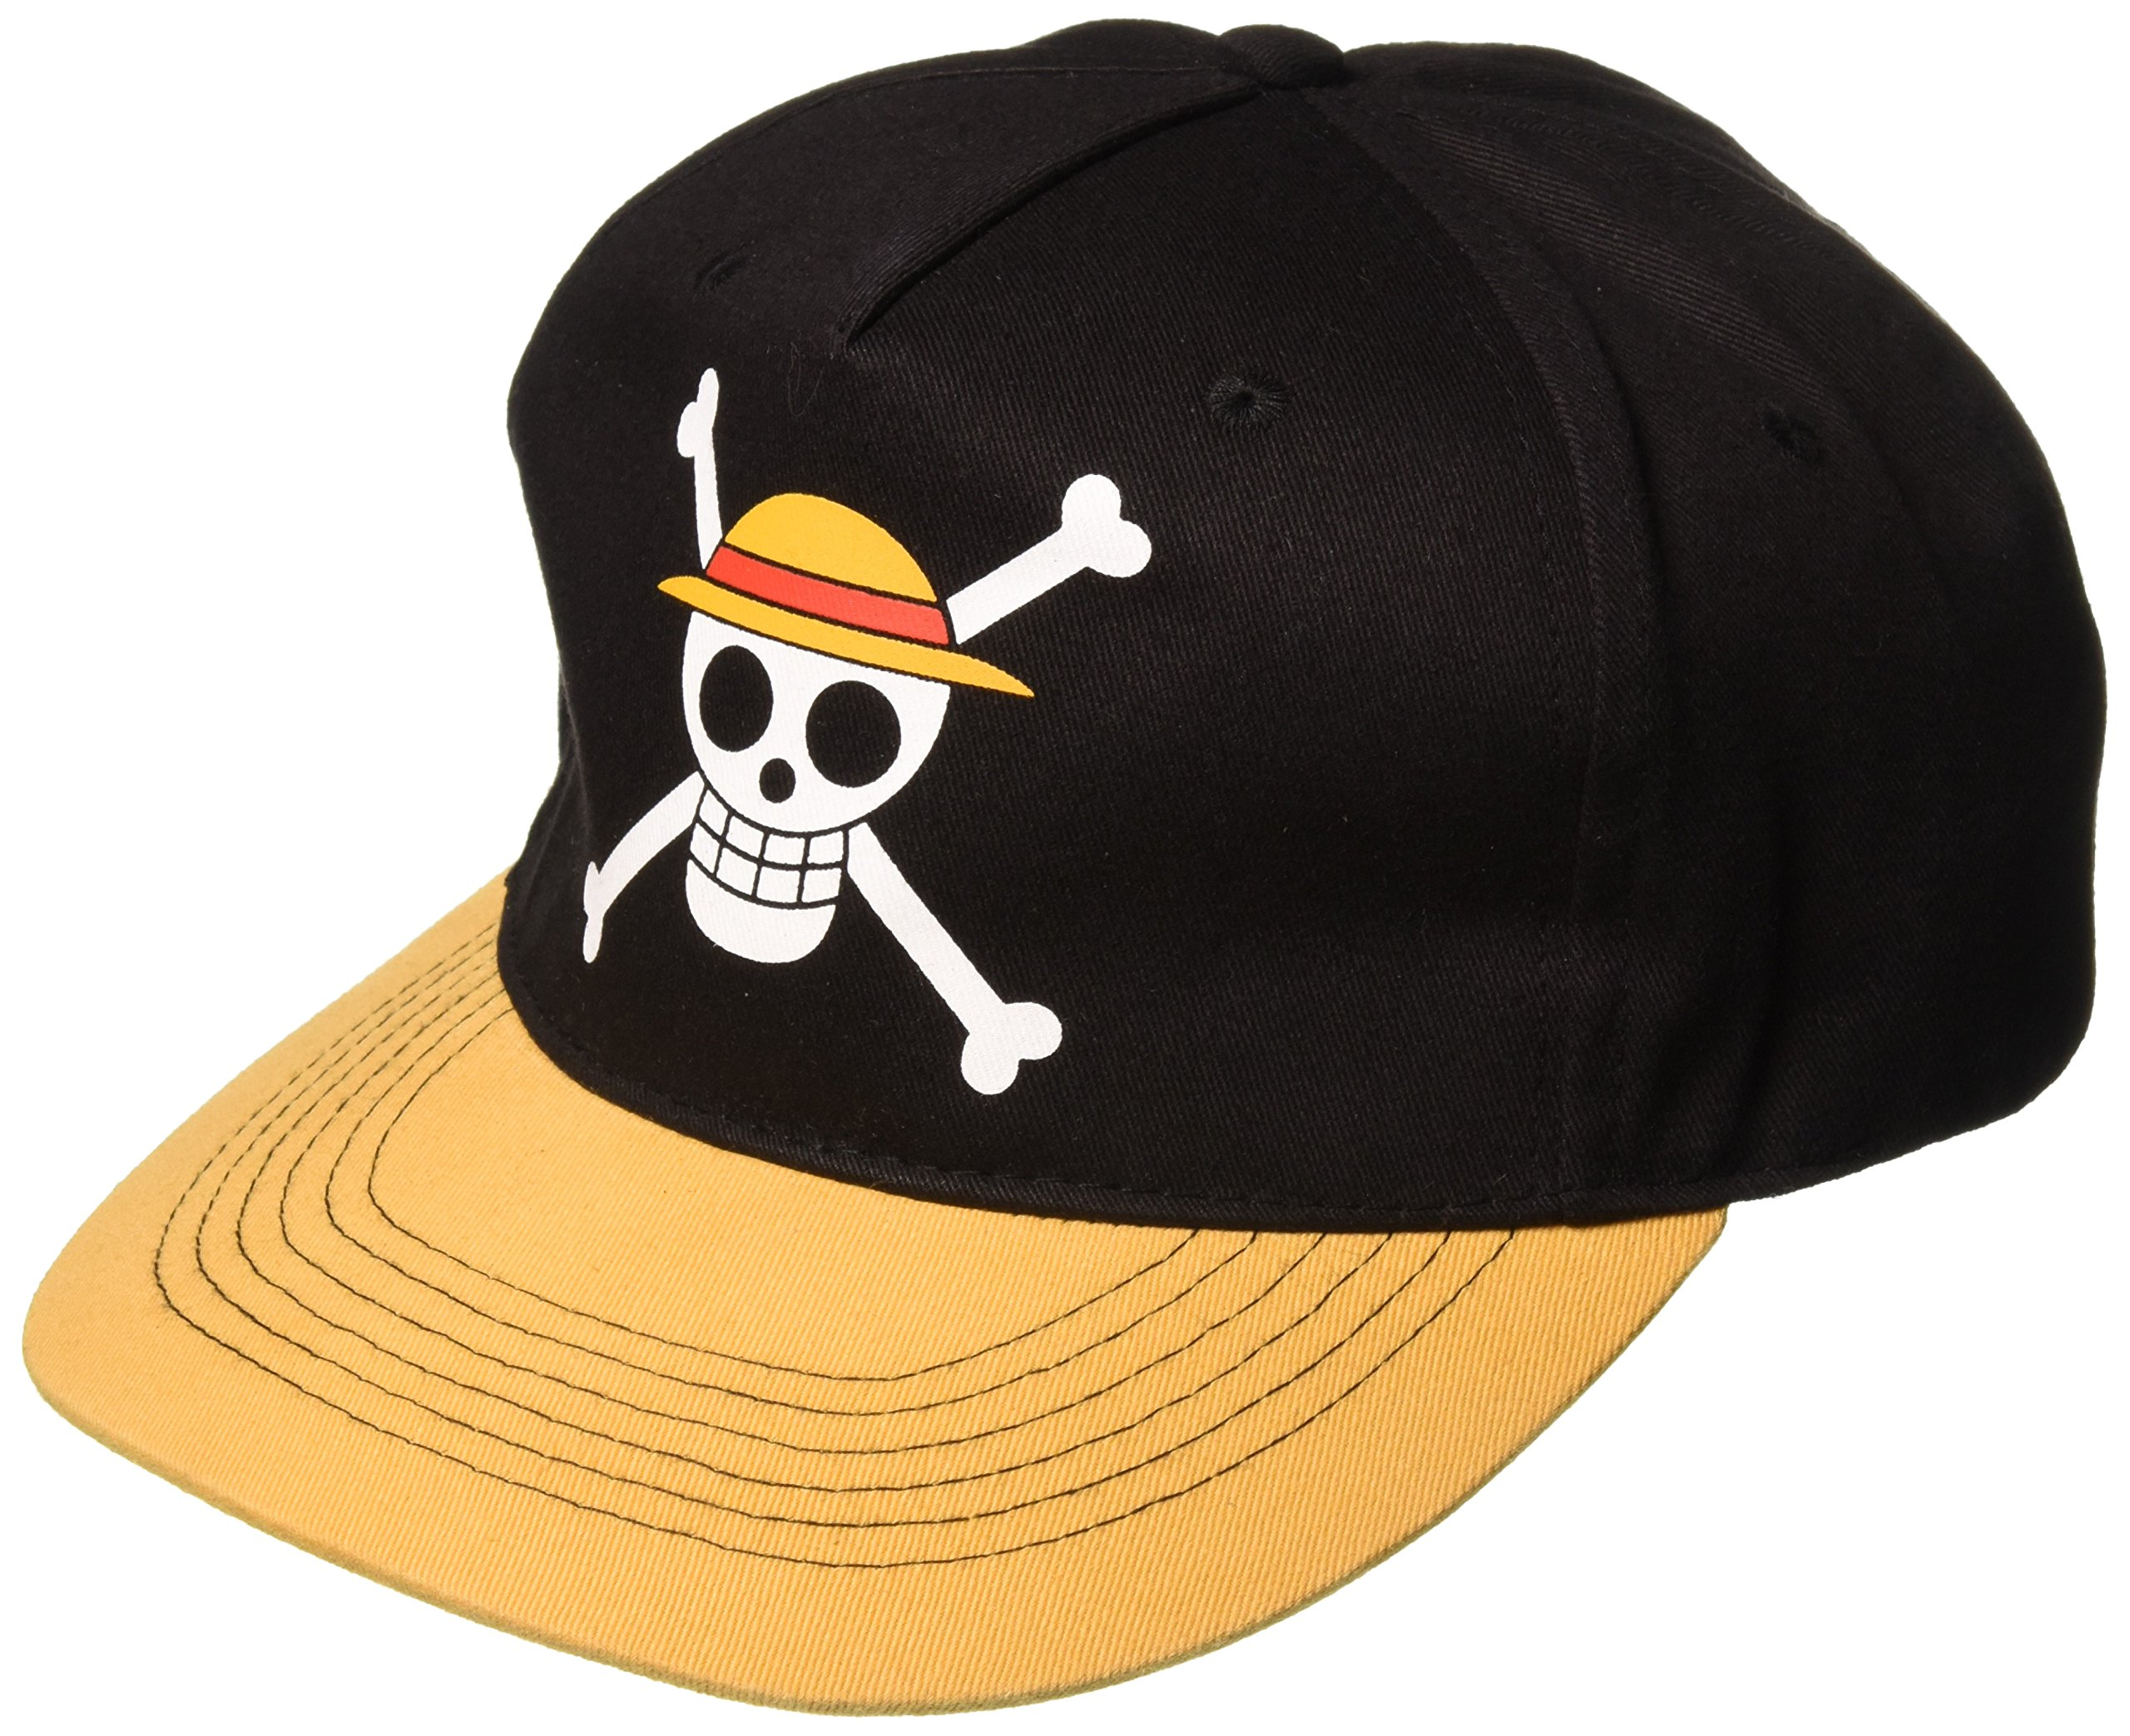 0ca7140f910978 Galleon - One Piece Luffy's Pirate Flag Headwear Cool Anime Hat